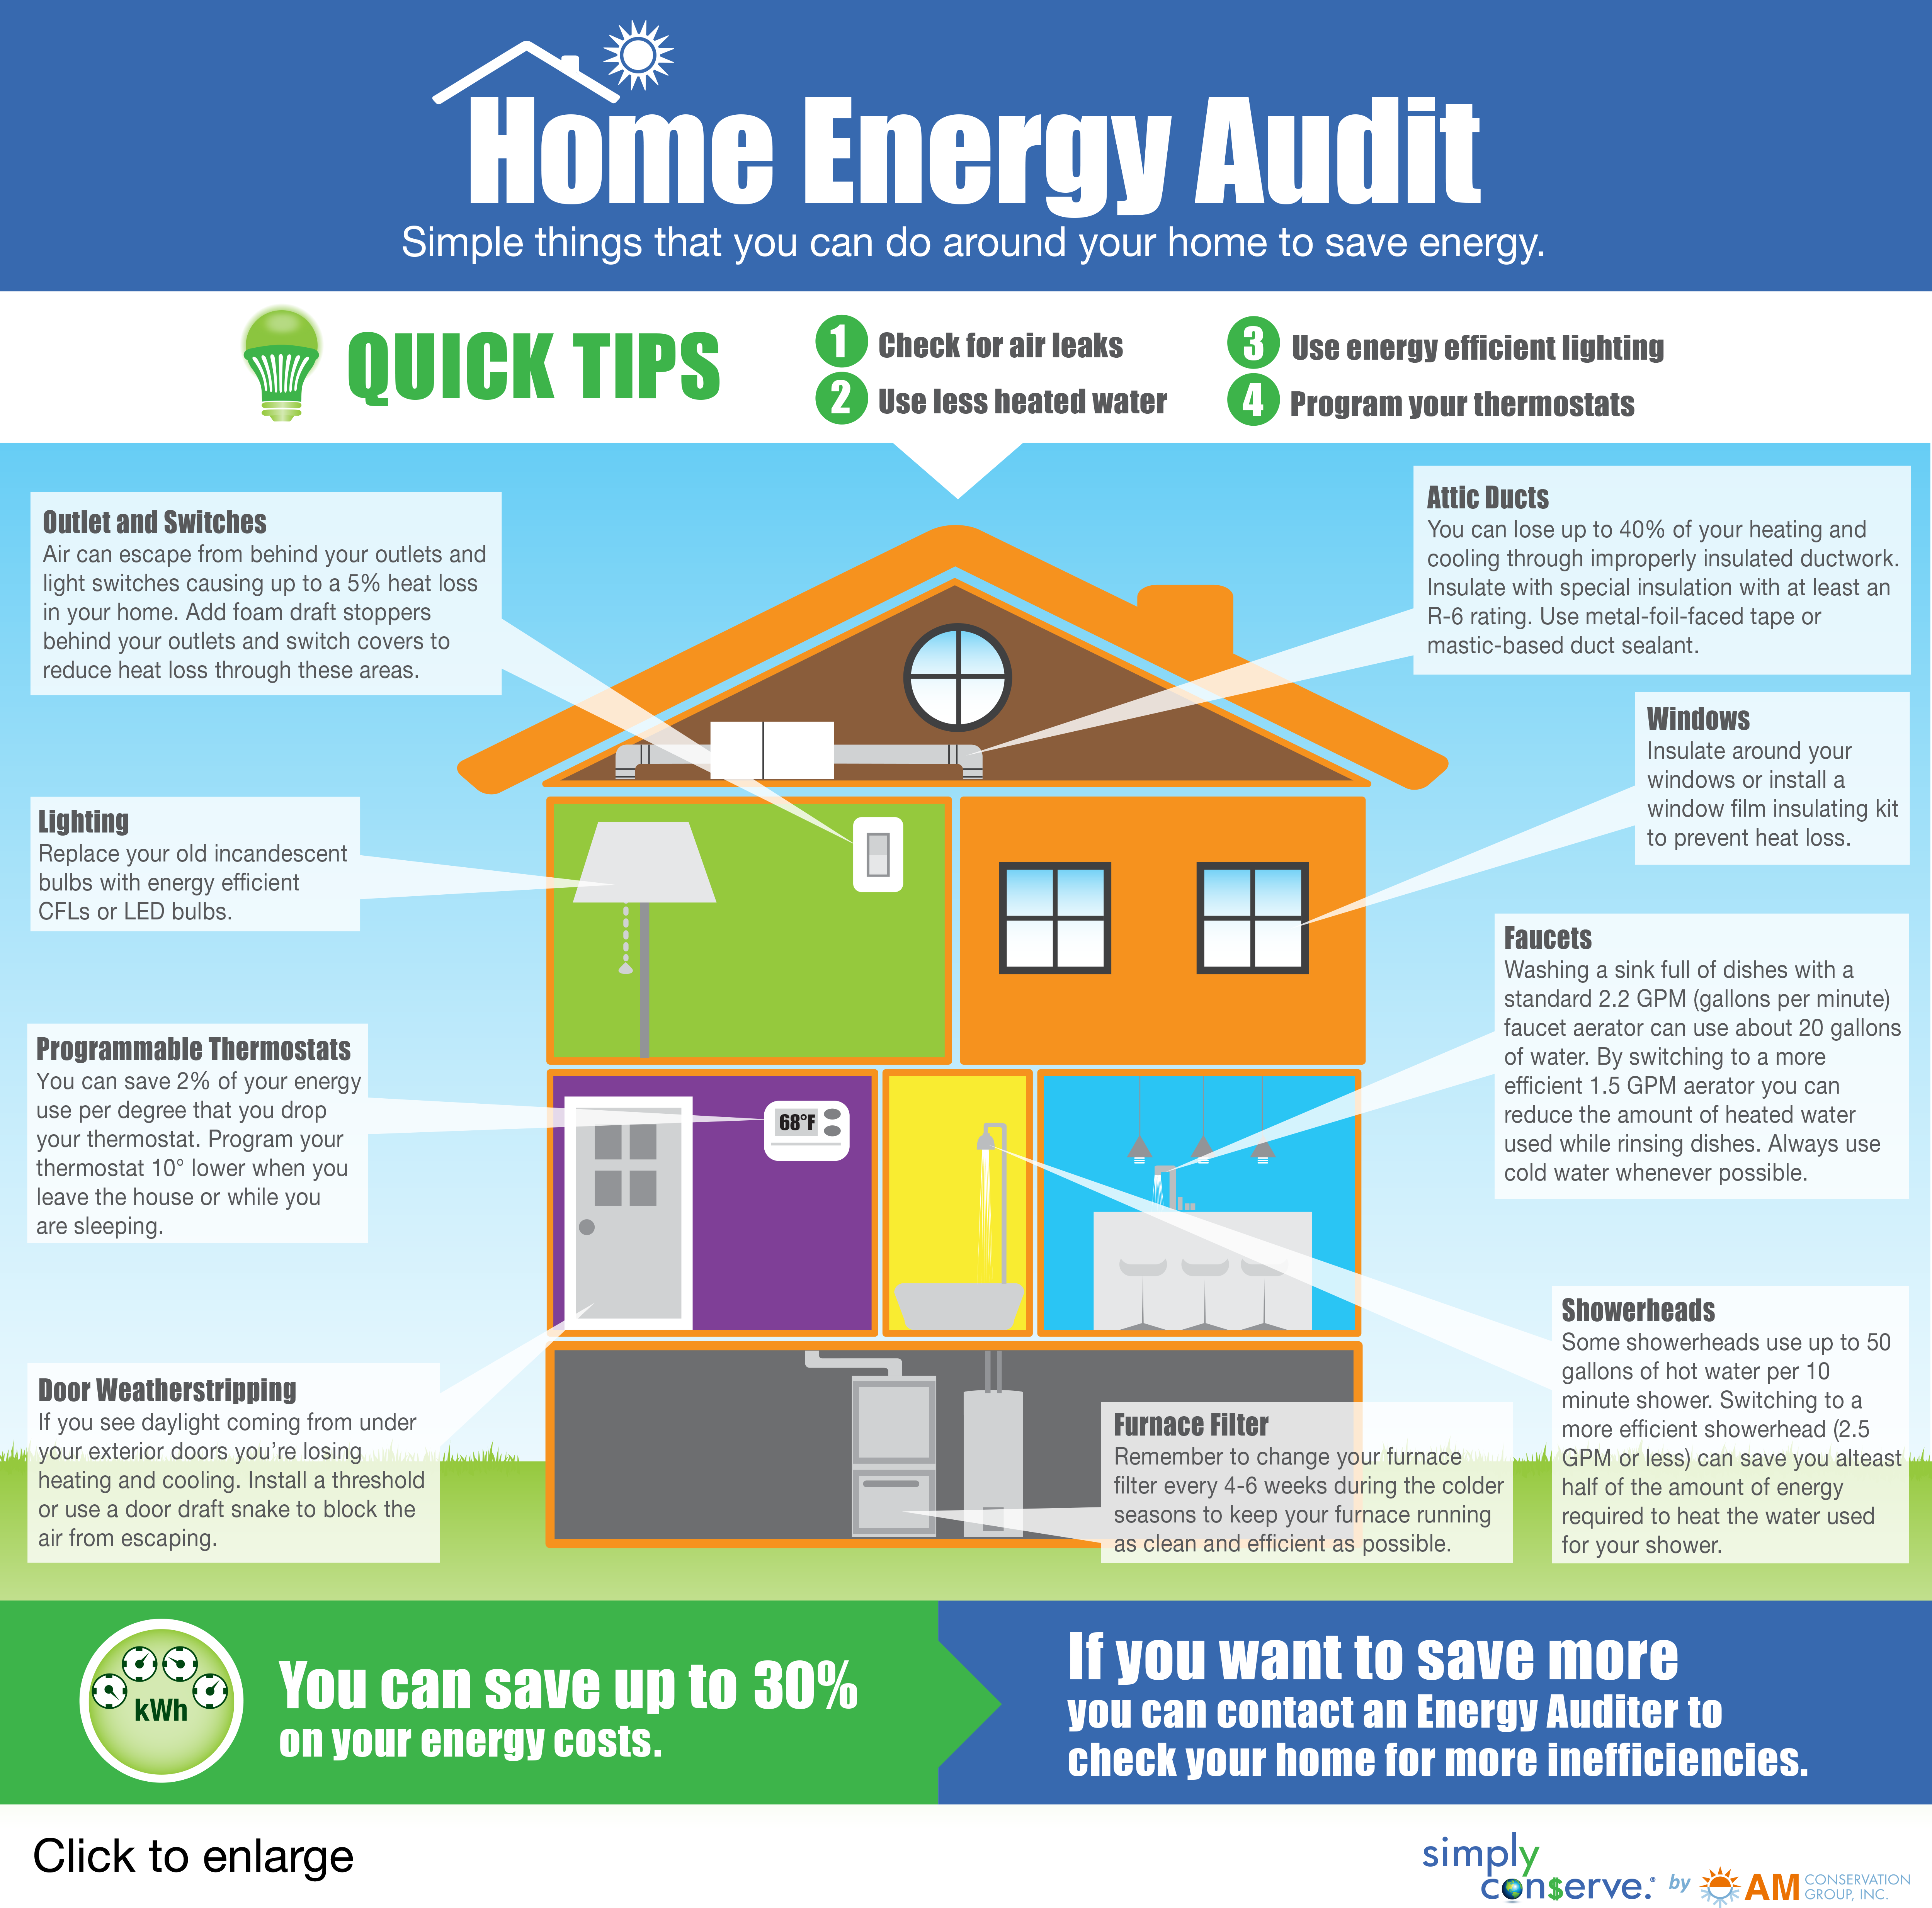 Home Energy Audit Energy Audit Energy Conservation Energy